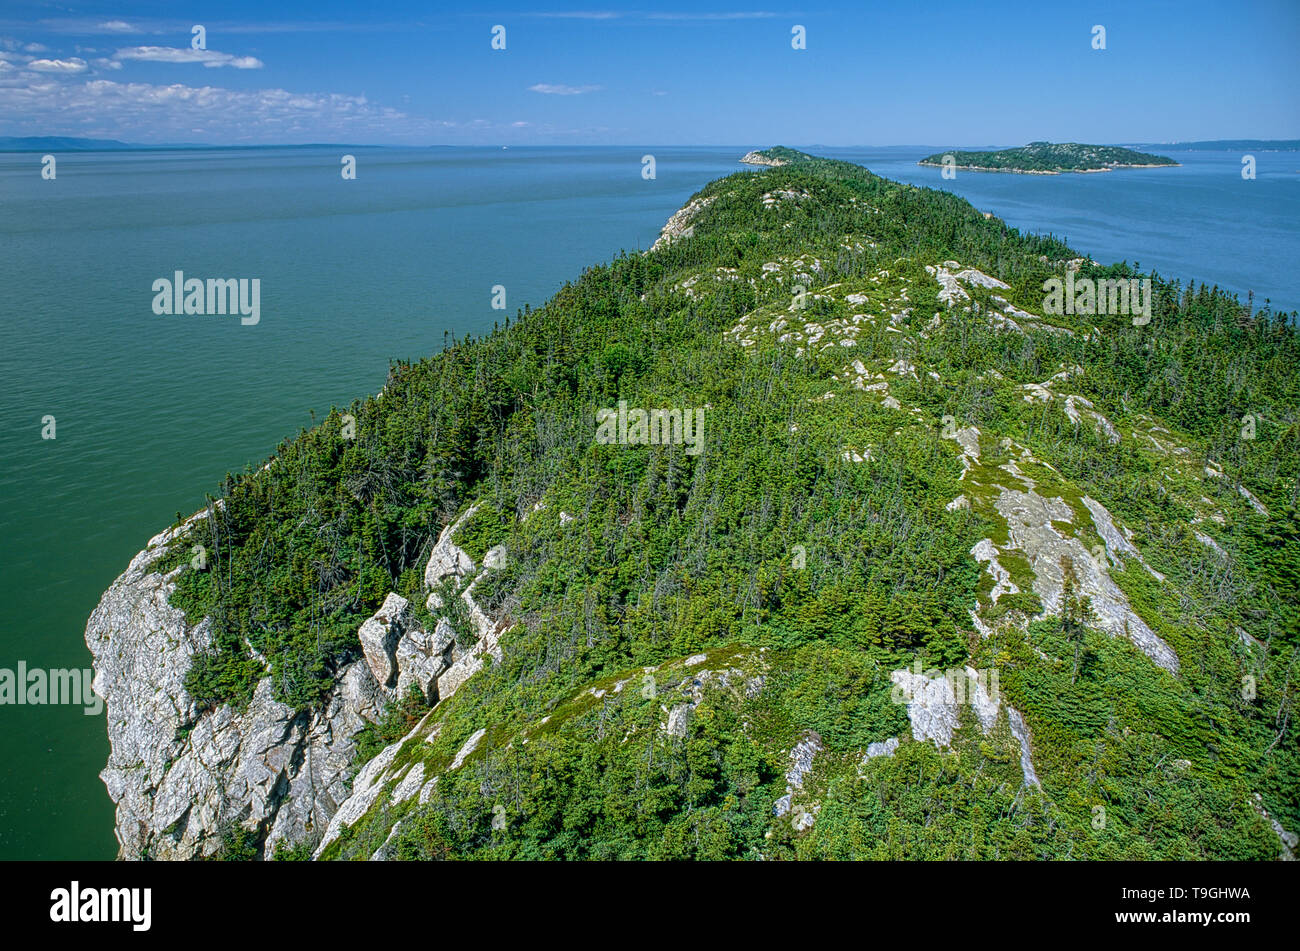 View of Pelerins Islands, Saint-Lawrence river,  Lower Saint-Lawrence region, Quebec, Canada - Stock Image